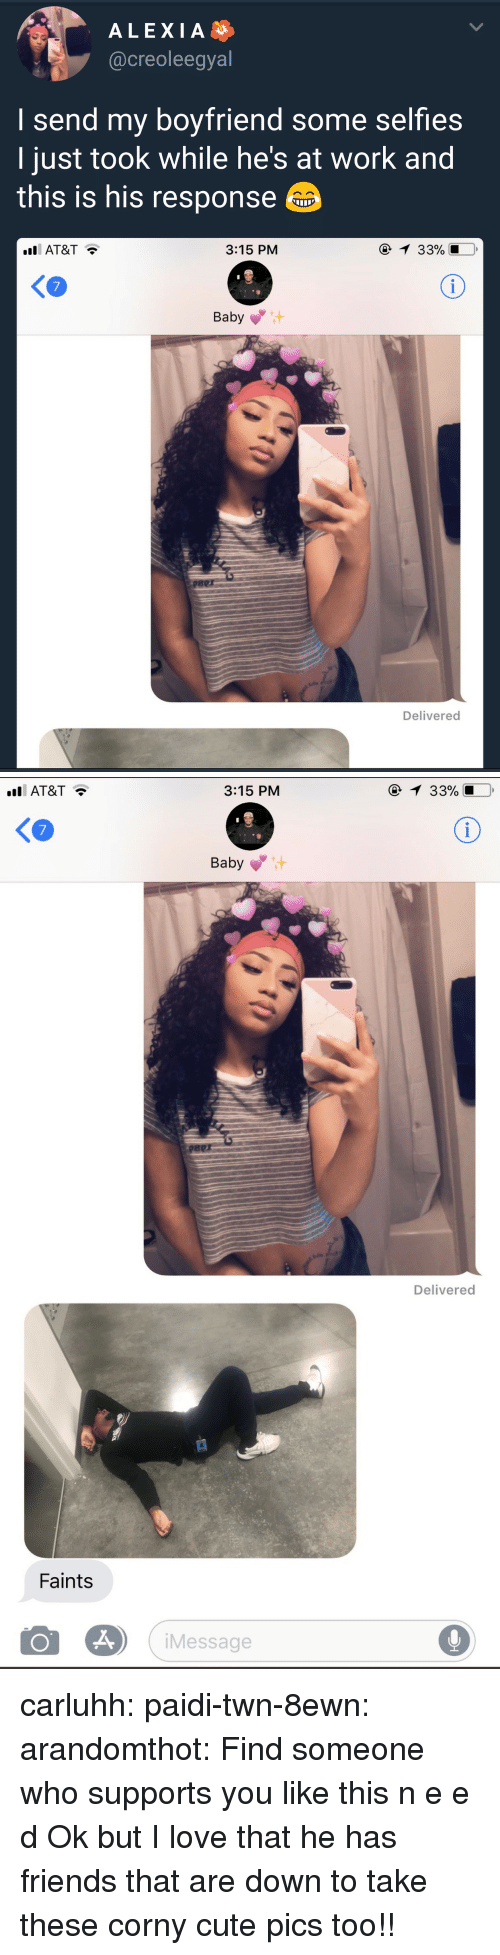 Cute, Friends, and Love: ALEXIA  @creoleegyal  I send my boyfriend some selfies  ljust took while he's at work and  this is his response  AT&T  3:15 PM  33901.0,  Baby  Delivered   AT&T  3:15 PM  1 33%  KO  7  Baby  Delivered  Faints  Message carluhh:  paidi-twn-8ewn:  arandomthot:  Find someone who supports you like this  n e e d  Ok but I love that he has friends that are down to take these corny cute pics too!!